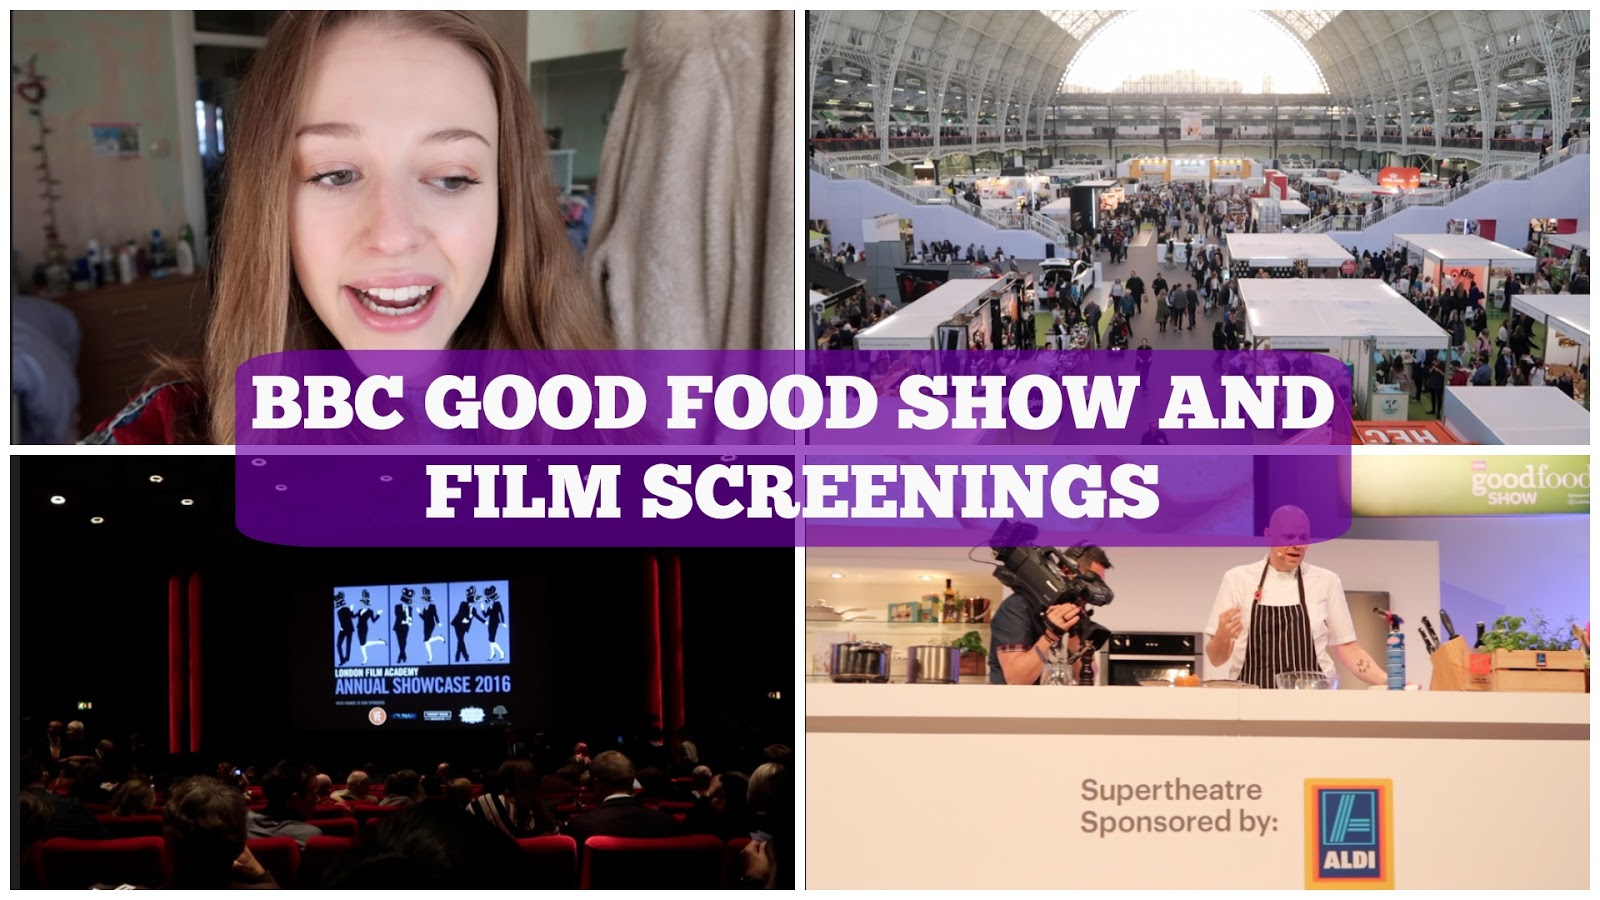 The Weekly Vlog: BBC Good Food Show and Film Screenings